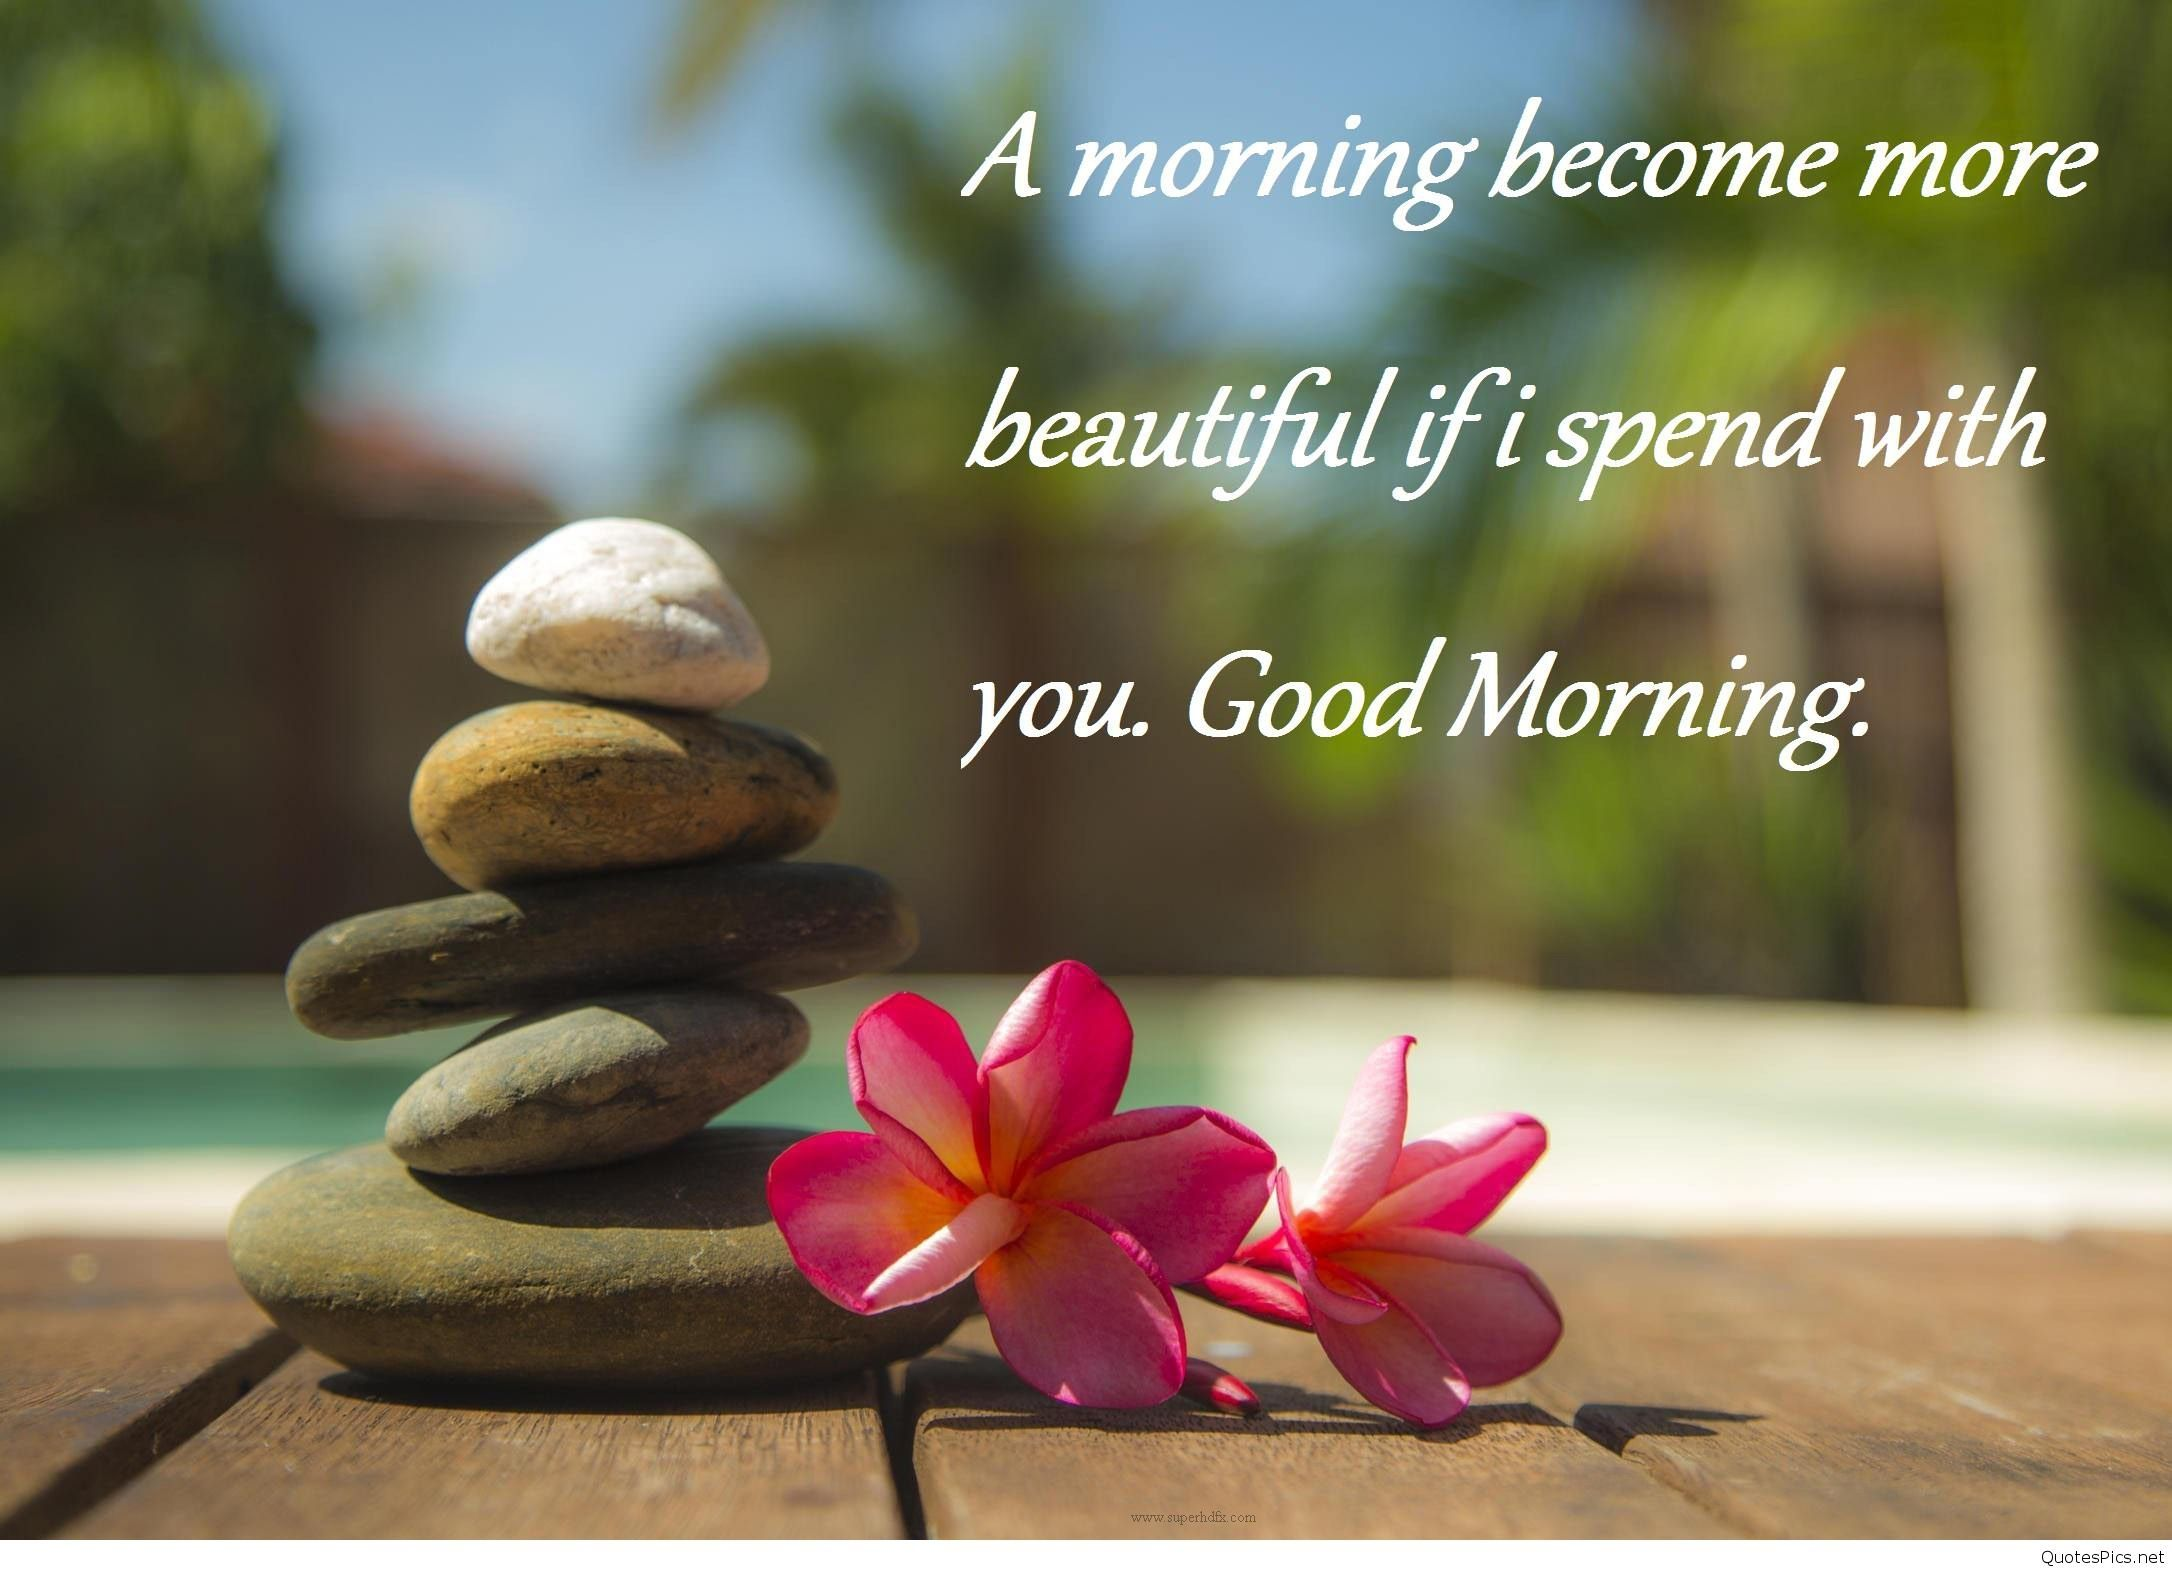 Good Morning Quotes Hd Quality